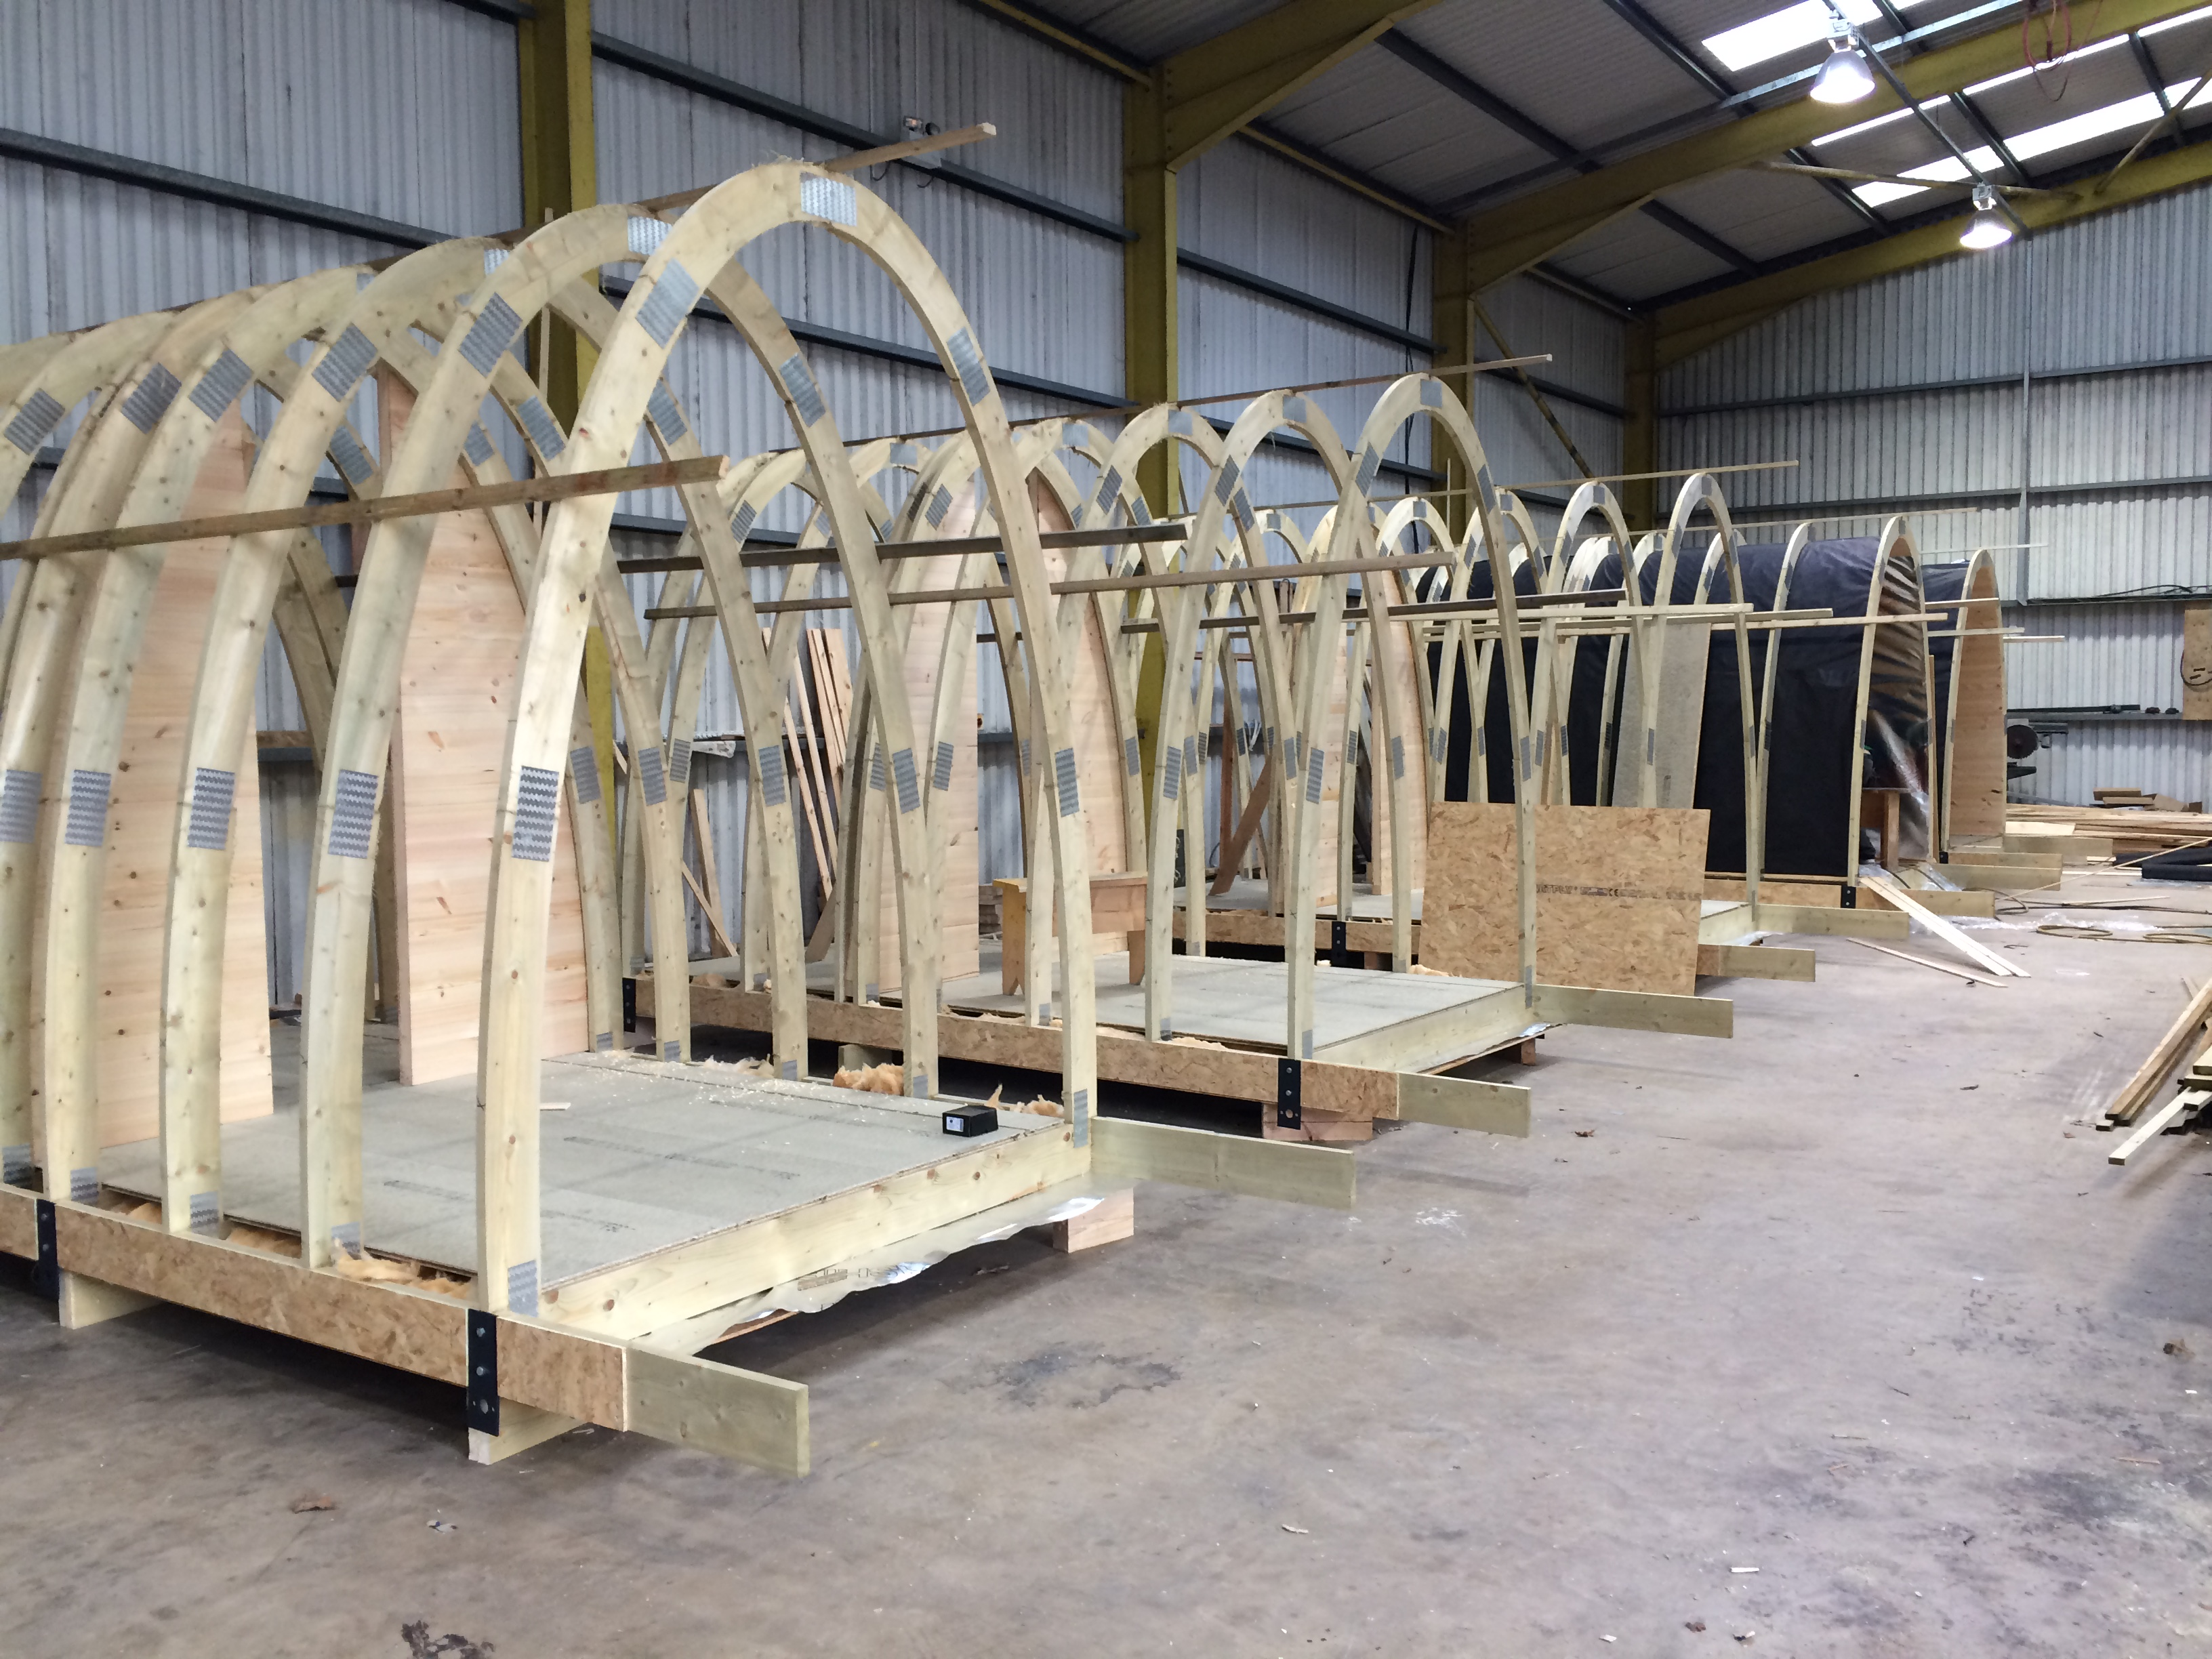 The Alton Towers Stargazing Pods under construction in the Factory